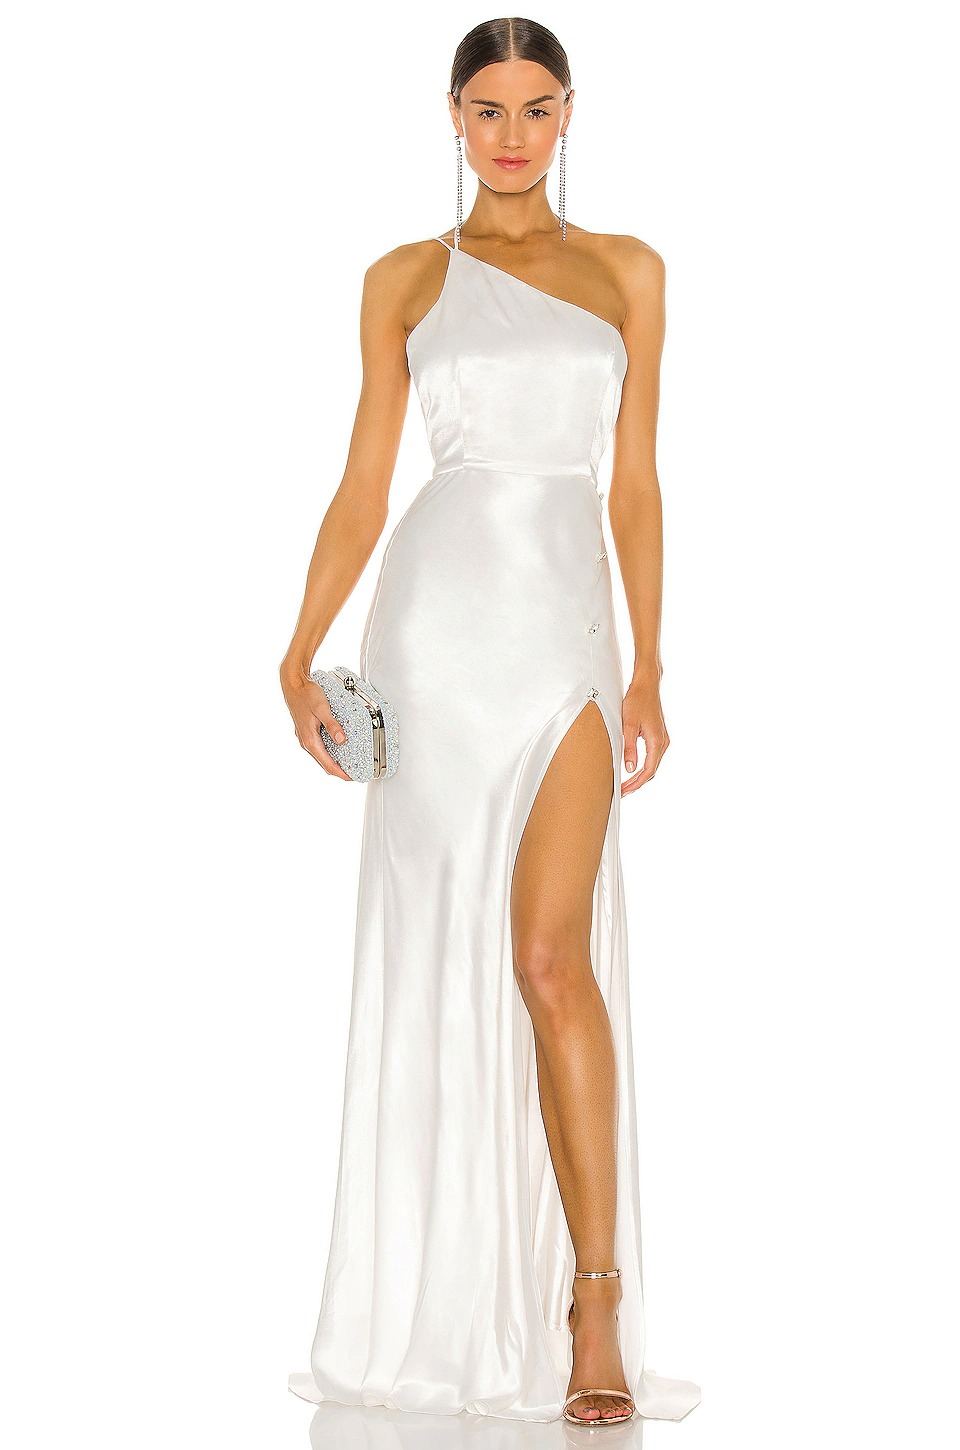 contemporary shiny one shoulder wedding dress online from Revolve